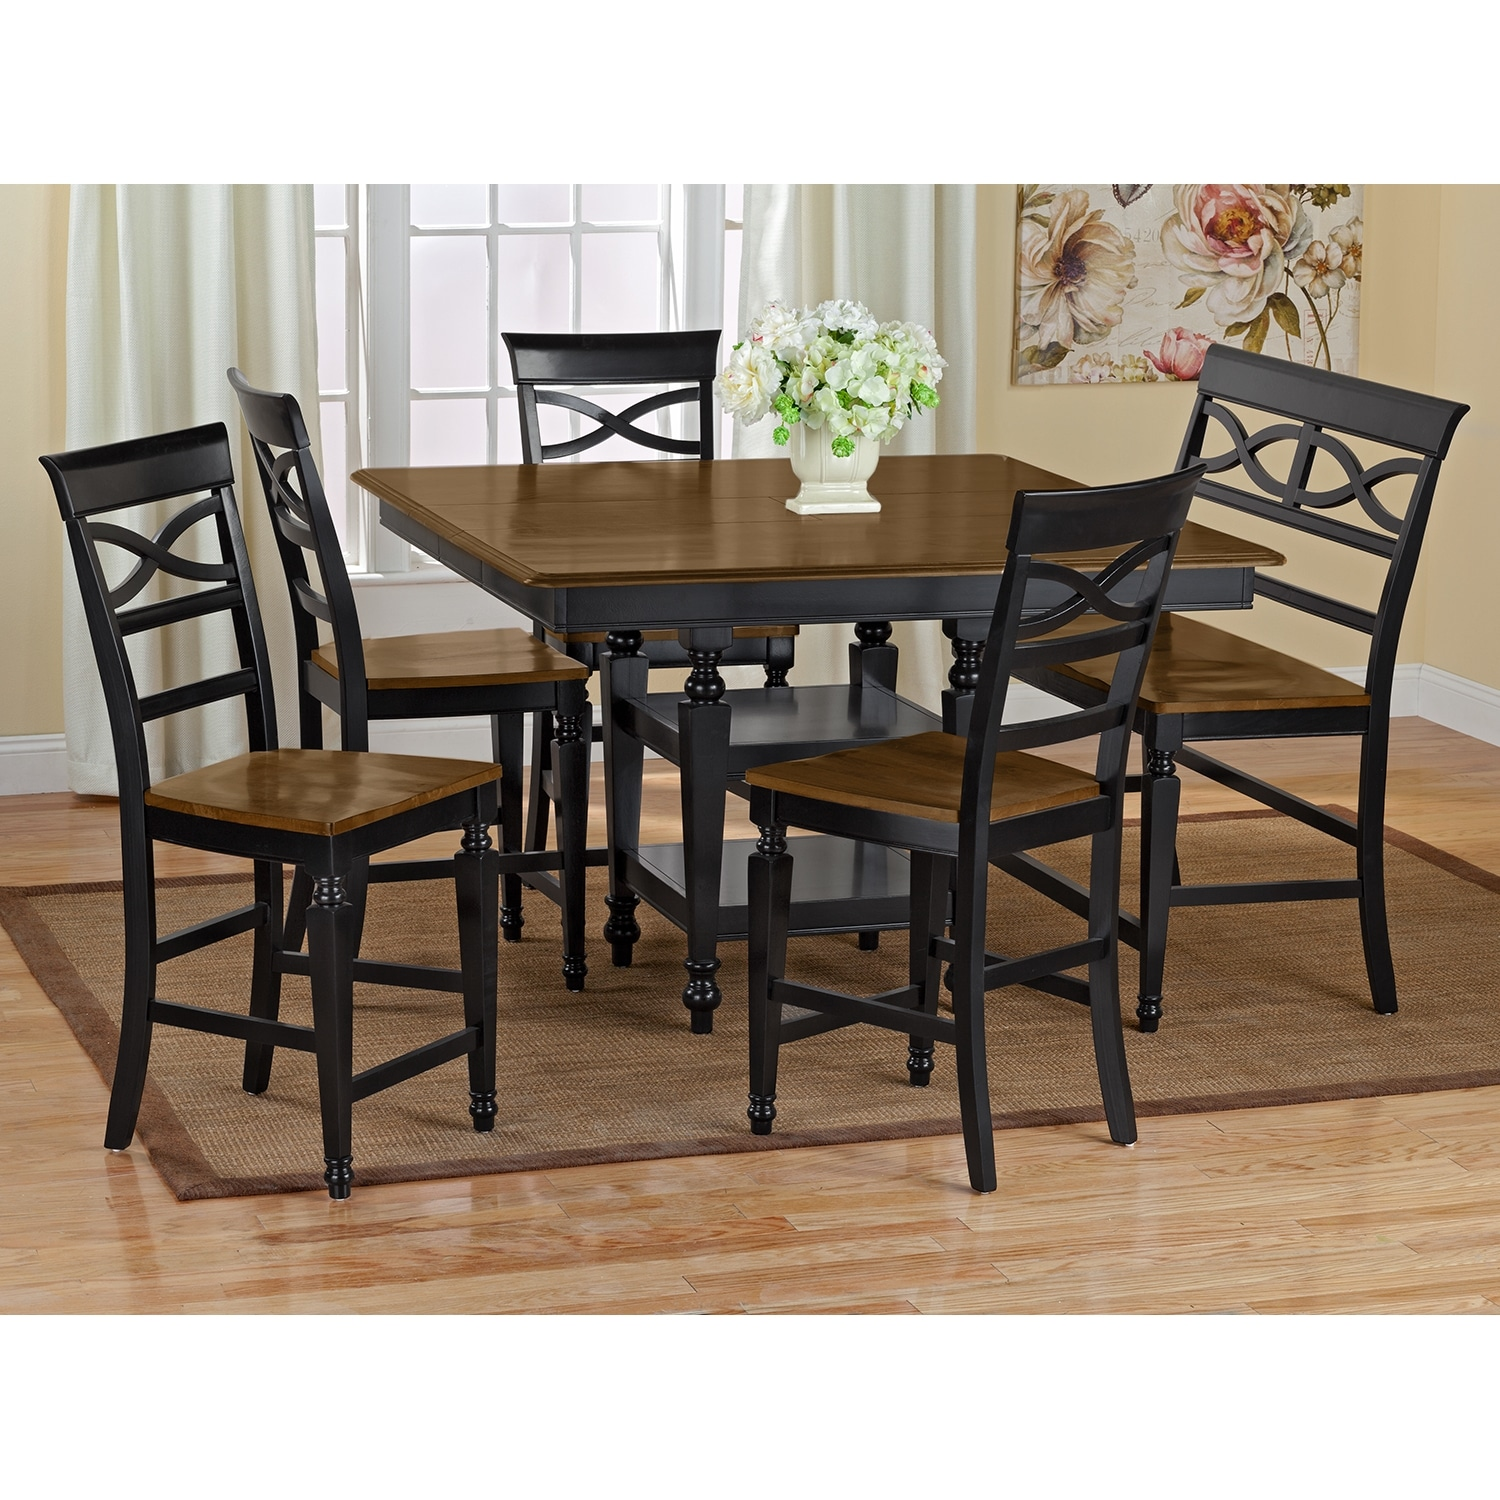 american signature furniture chesapeake dining room